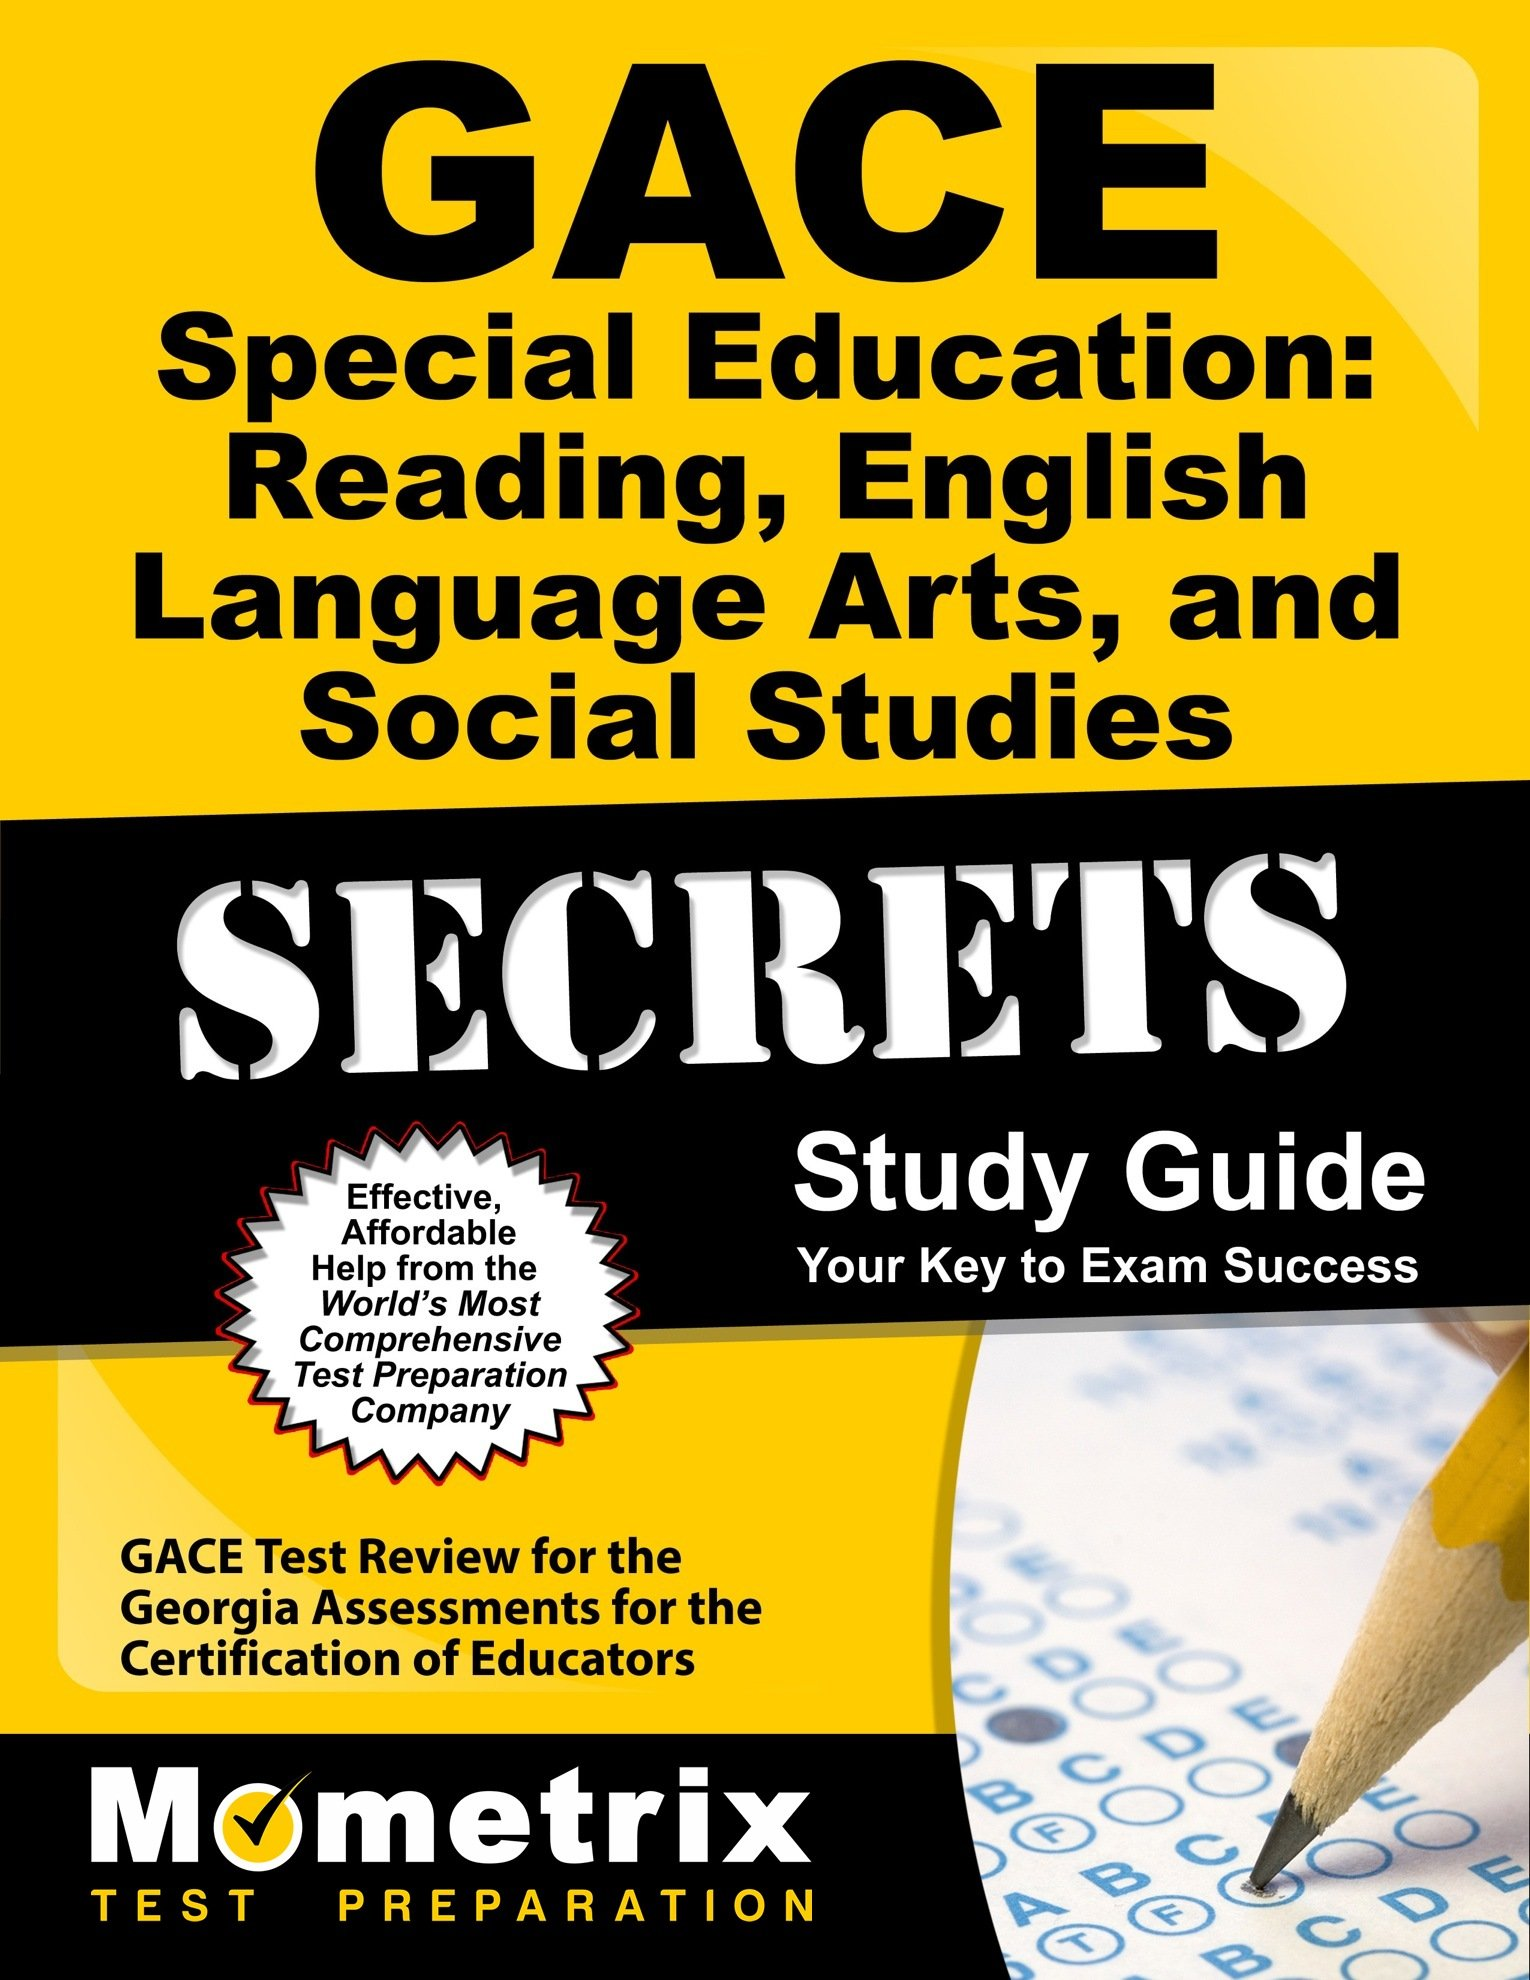 GACE Special Education: Reading, English Language Arts, and Social Studies Secrets Study Guide: GACE Test Review for the Georgia Assessments for the Certification of Educators (Secrets (Mometrix)) by Mometrix Media LLC